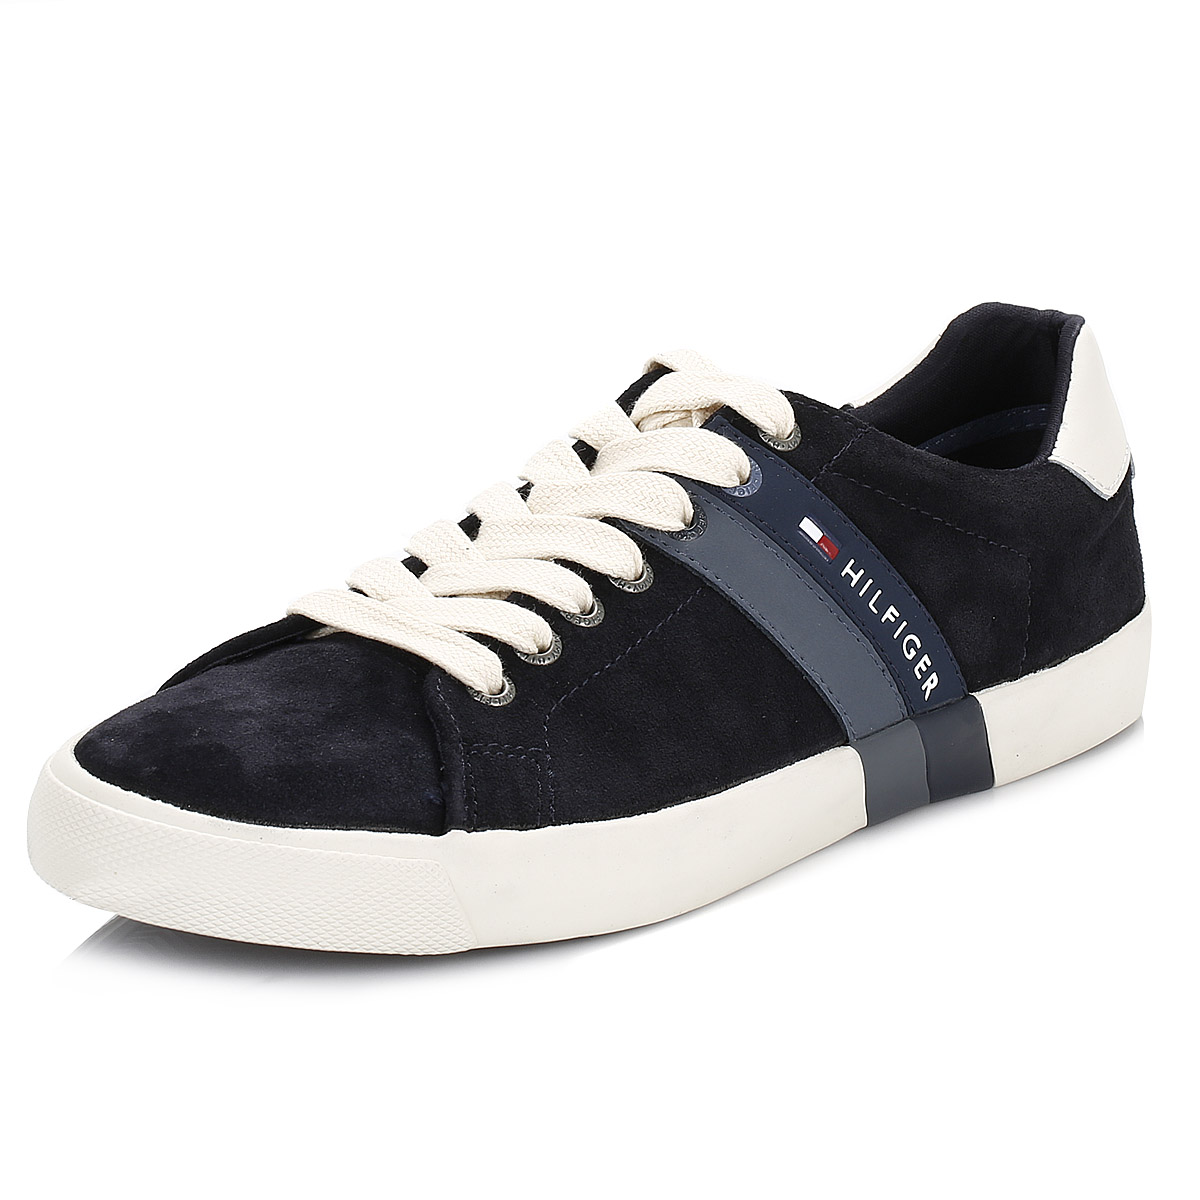 tommy hilfiger mens trainers blue volley 5a leather lace. Black Bedroom Furniture Sets. Home Design Ideas